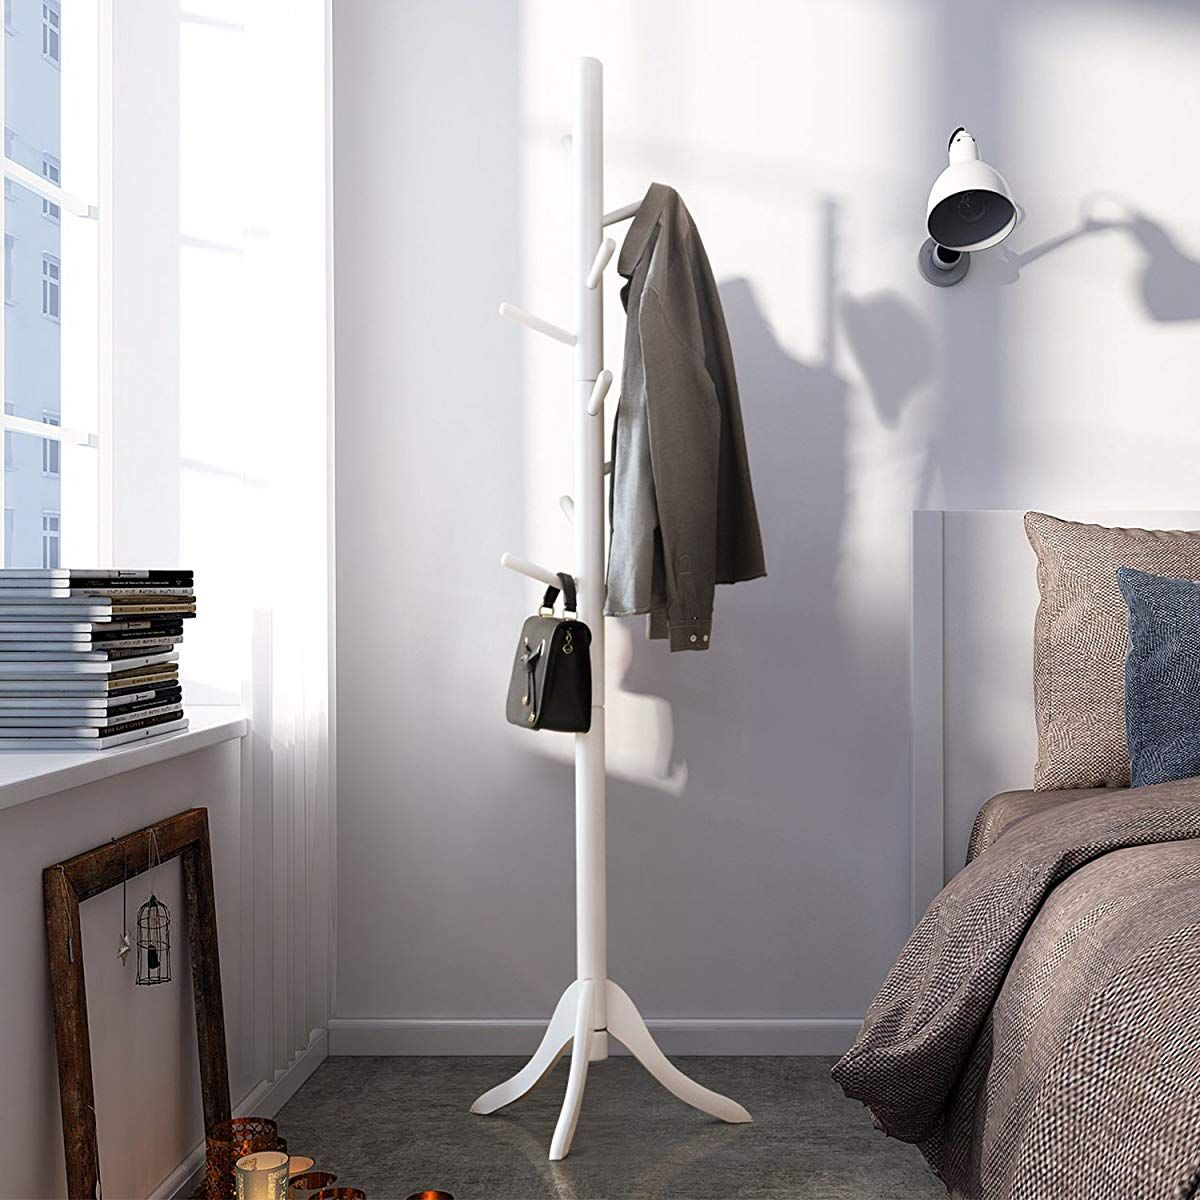 Lch Sturdy Standing Coat Rack Solid Rubber Wood Hall Tree Coat Tree With Tripod Base 8 Hooks White Coat Rack White Coat Rack Coat Tree